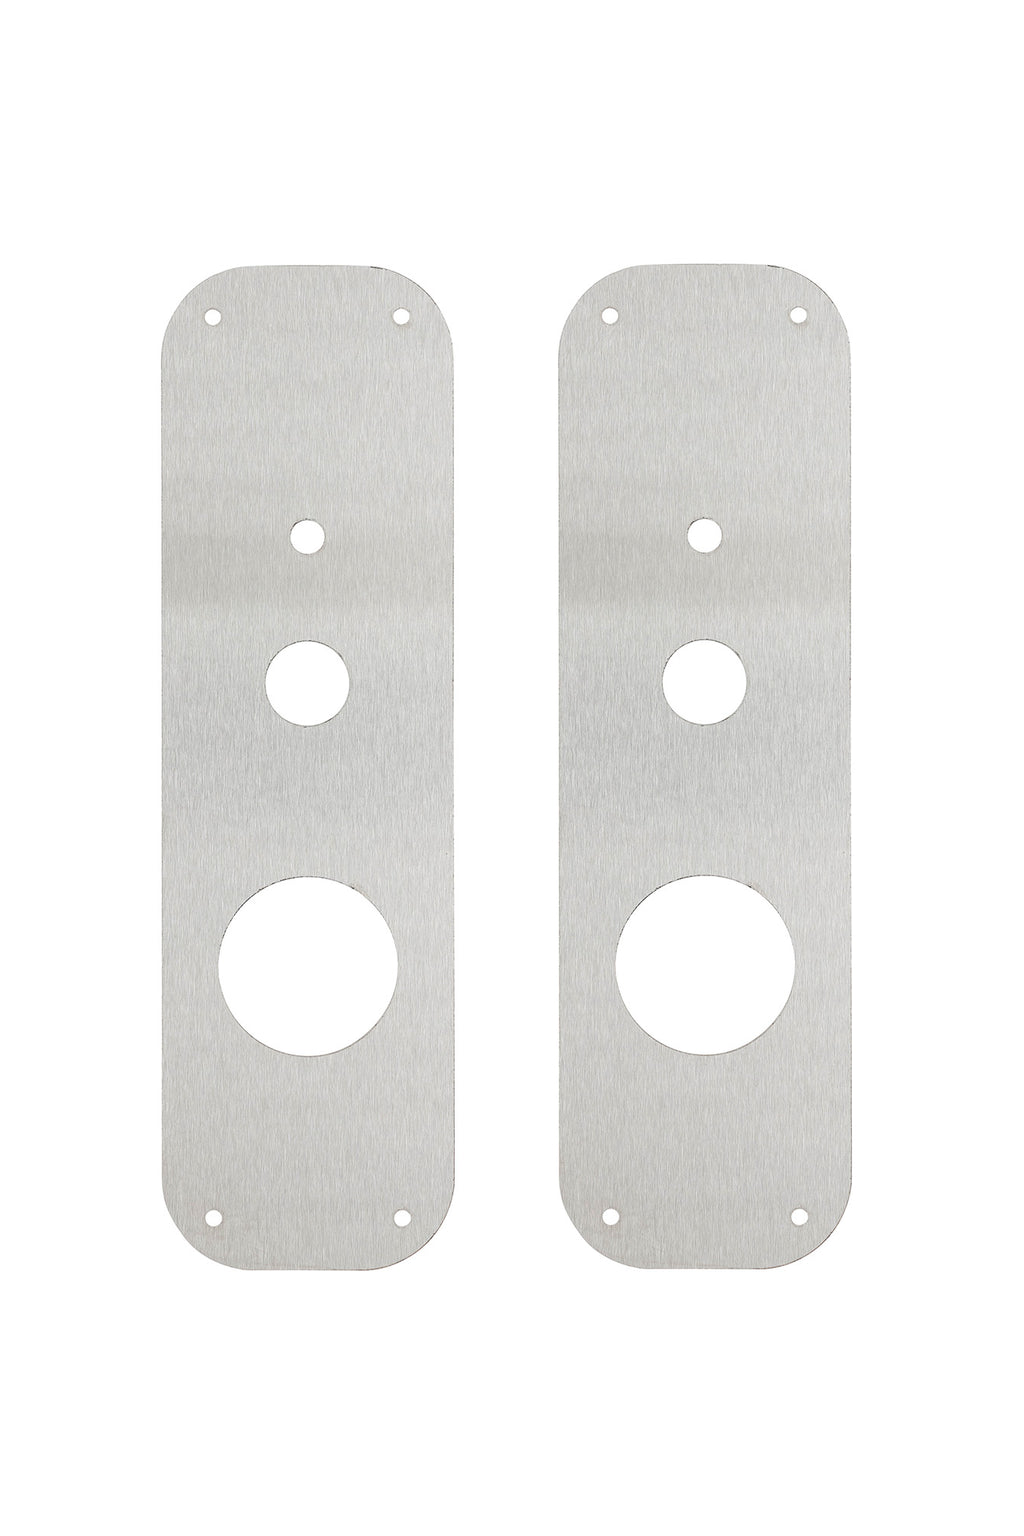 OpenEdge 600 Series - Coverplates